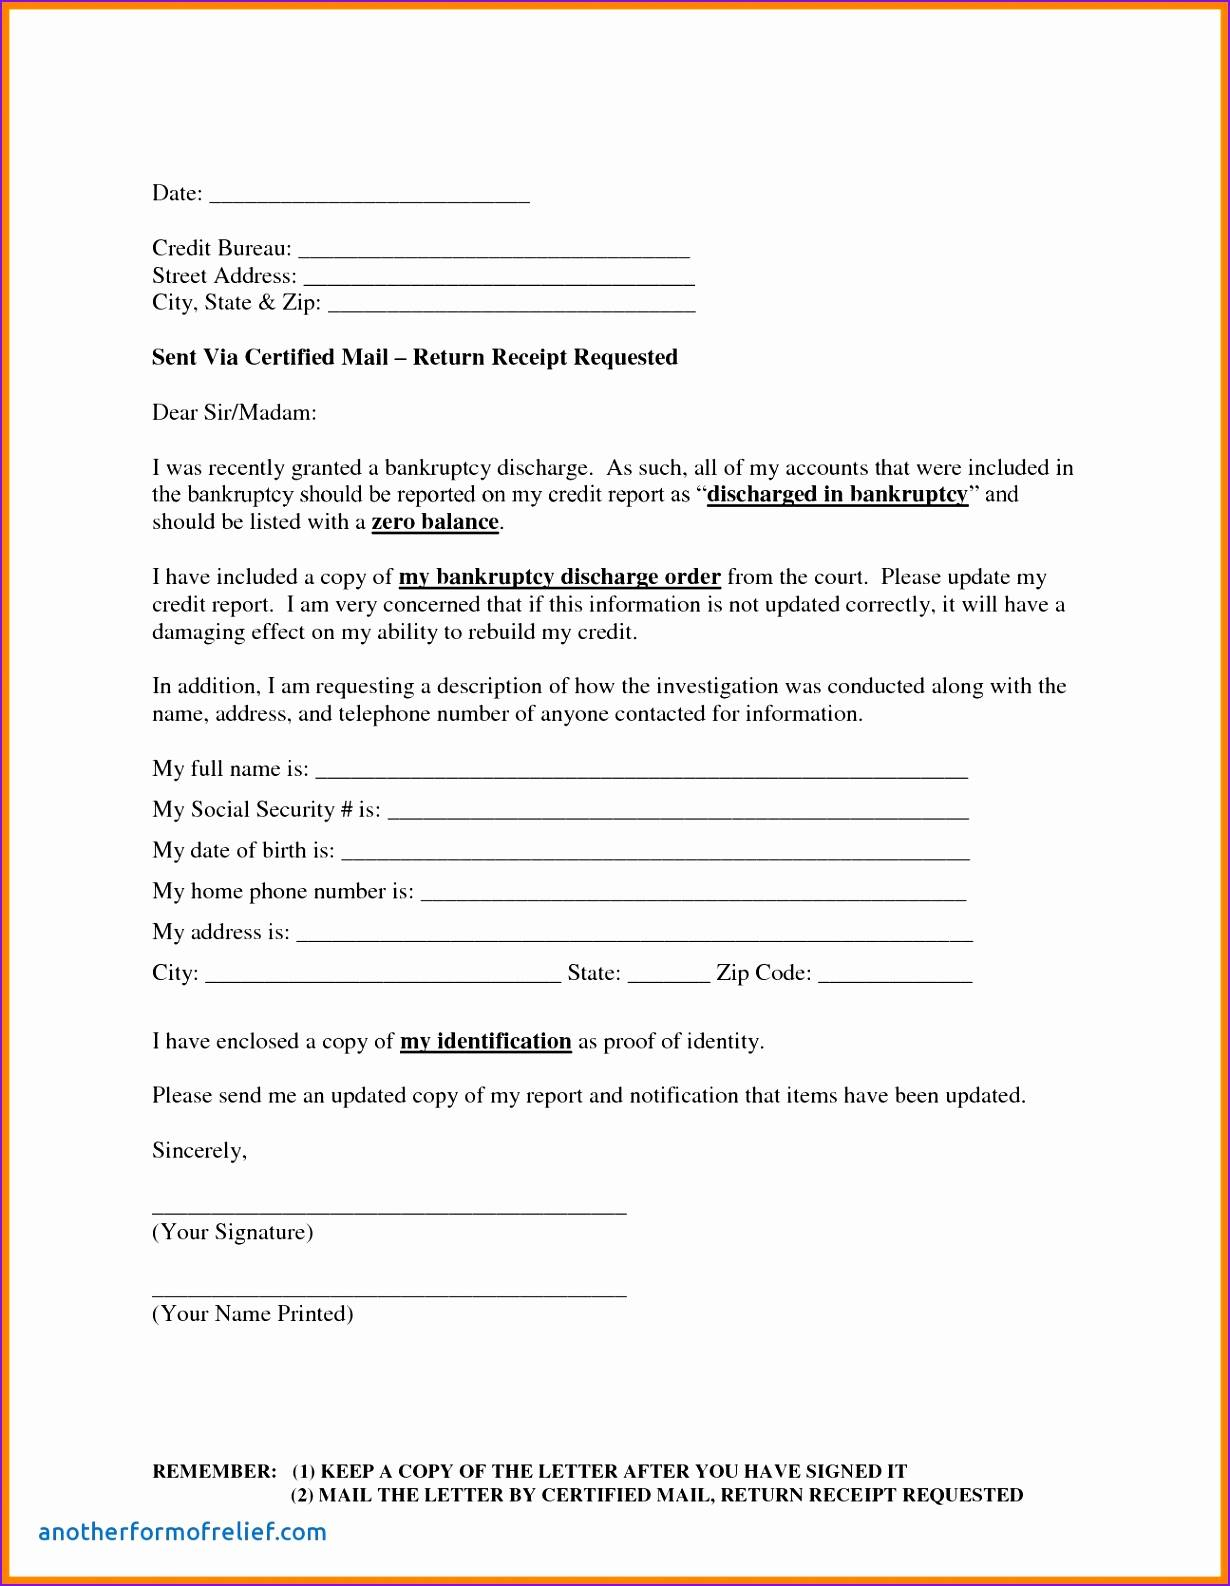 Letter Template to Dispute Credit Report - Credit Report Dispute Letter Template Fresh Credit Repair Letter